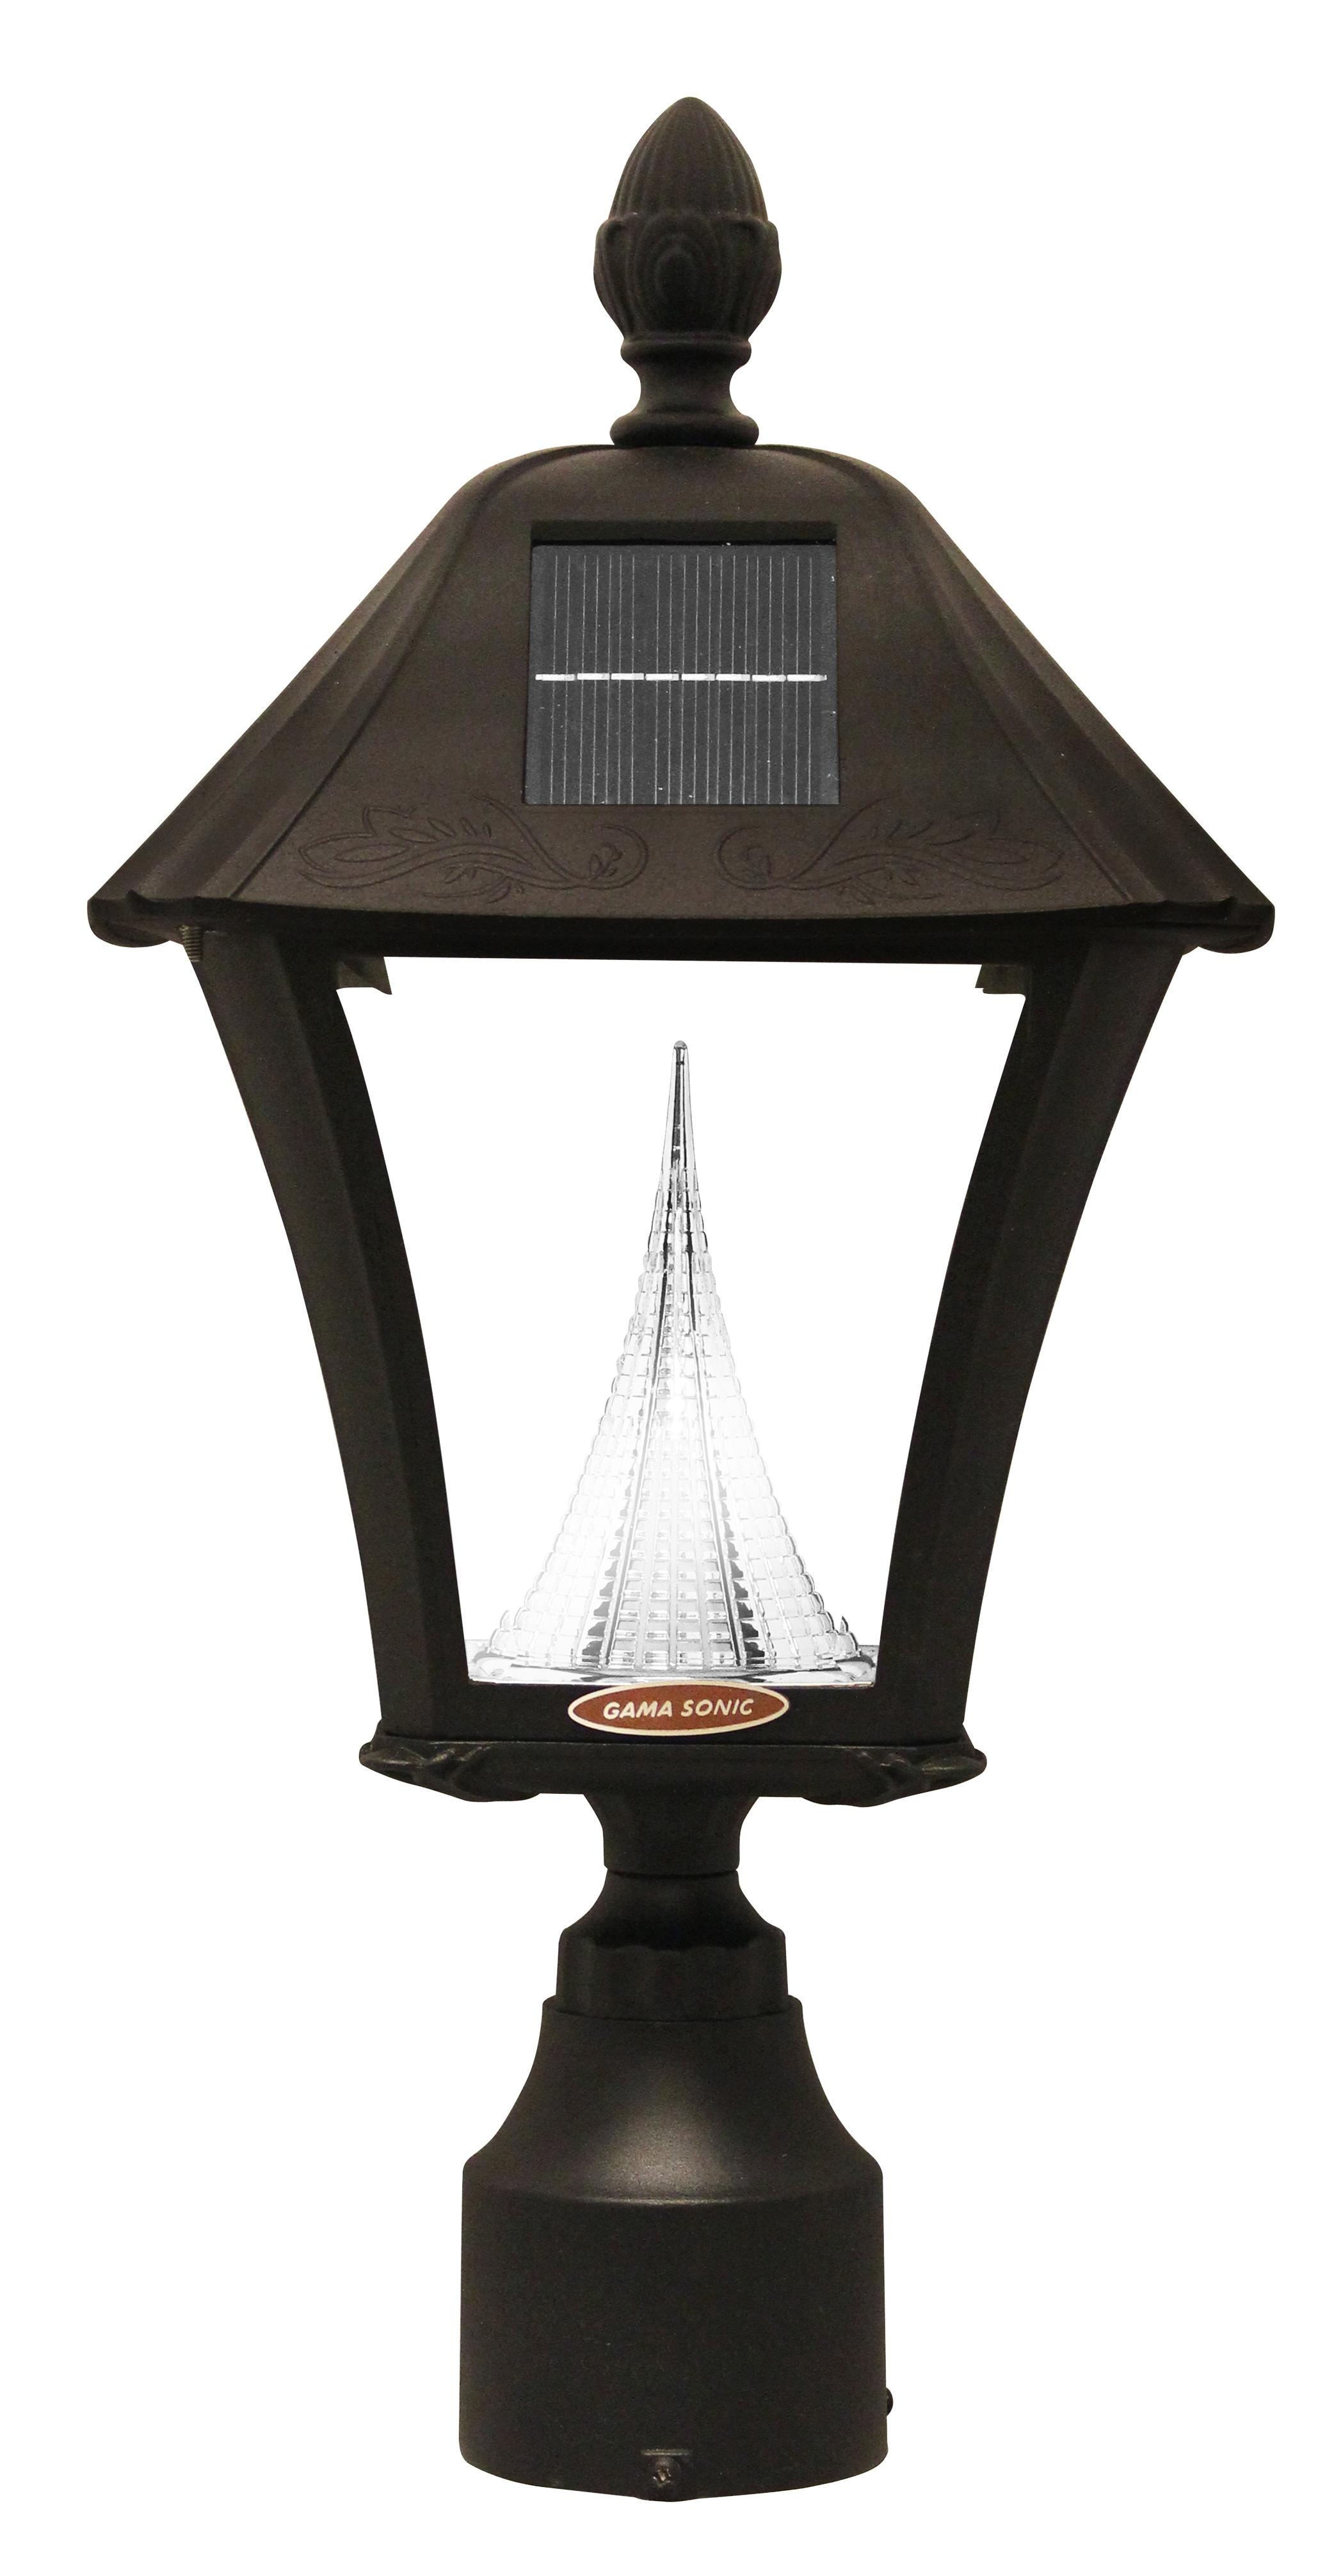 Gama Sonic Gs 106fpw Baytown Outdoor Solar Light In Black